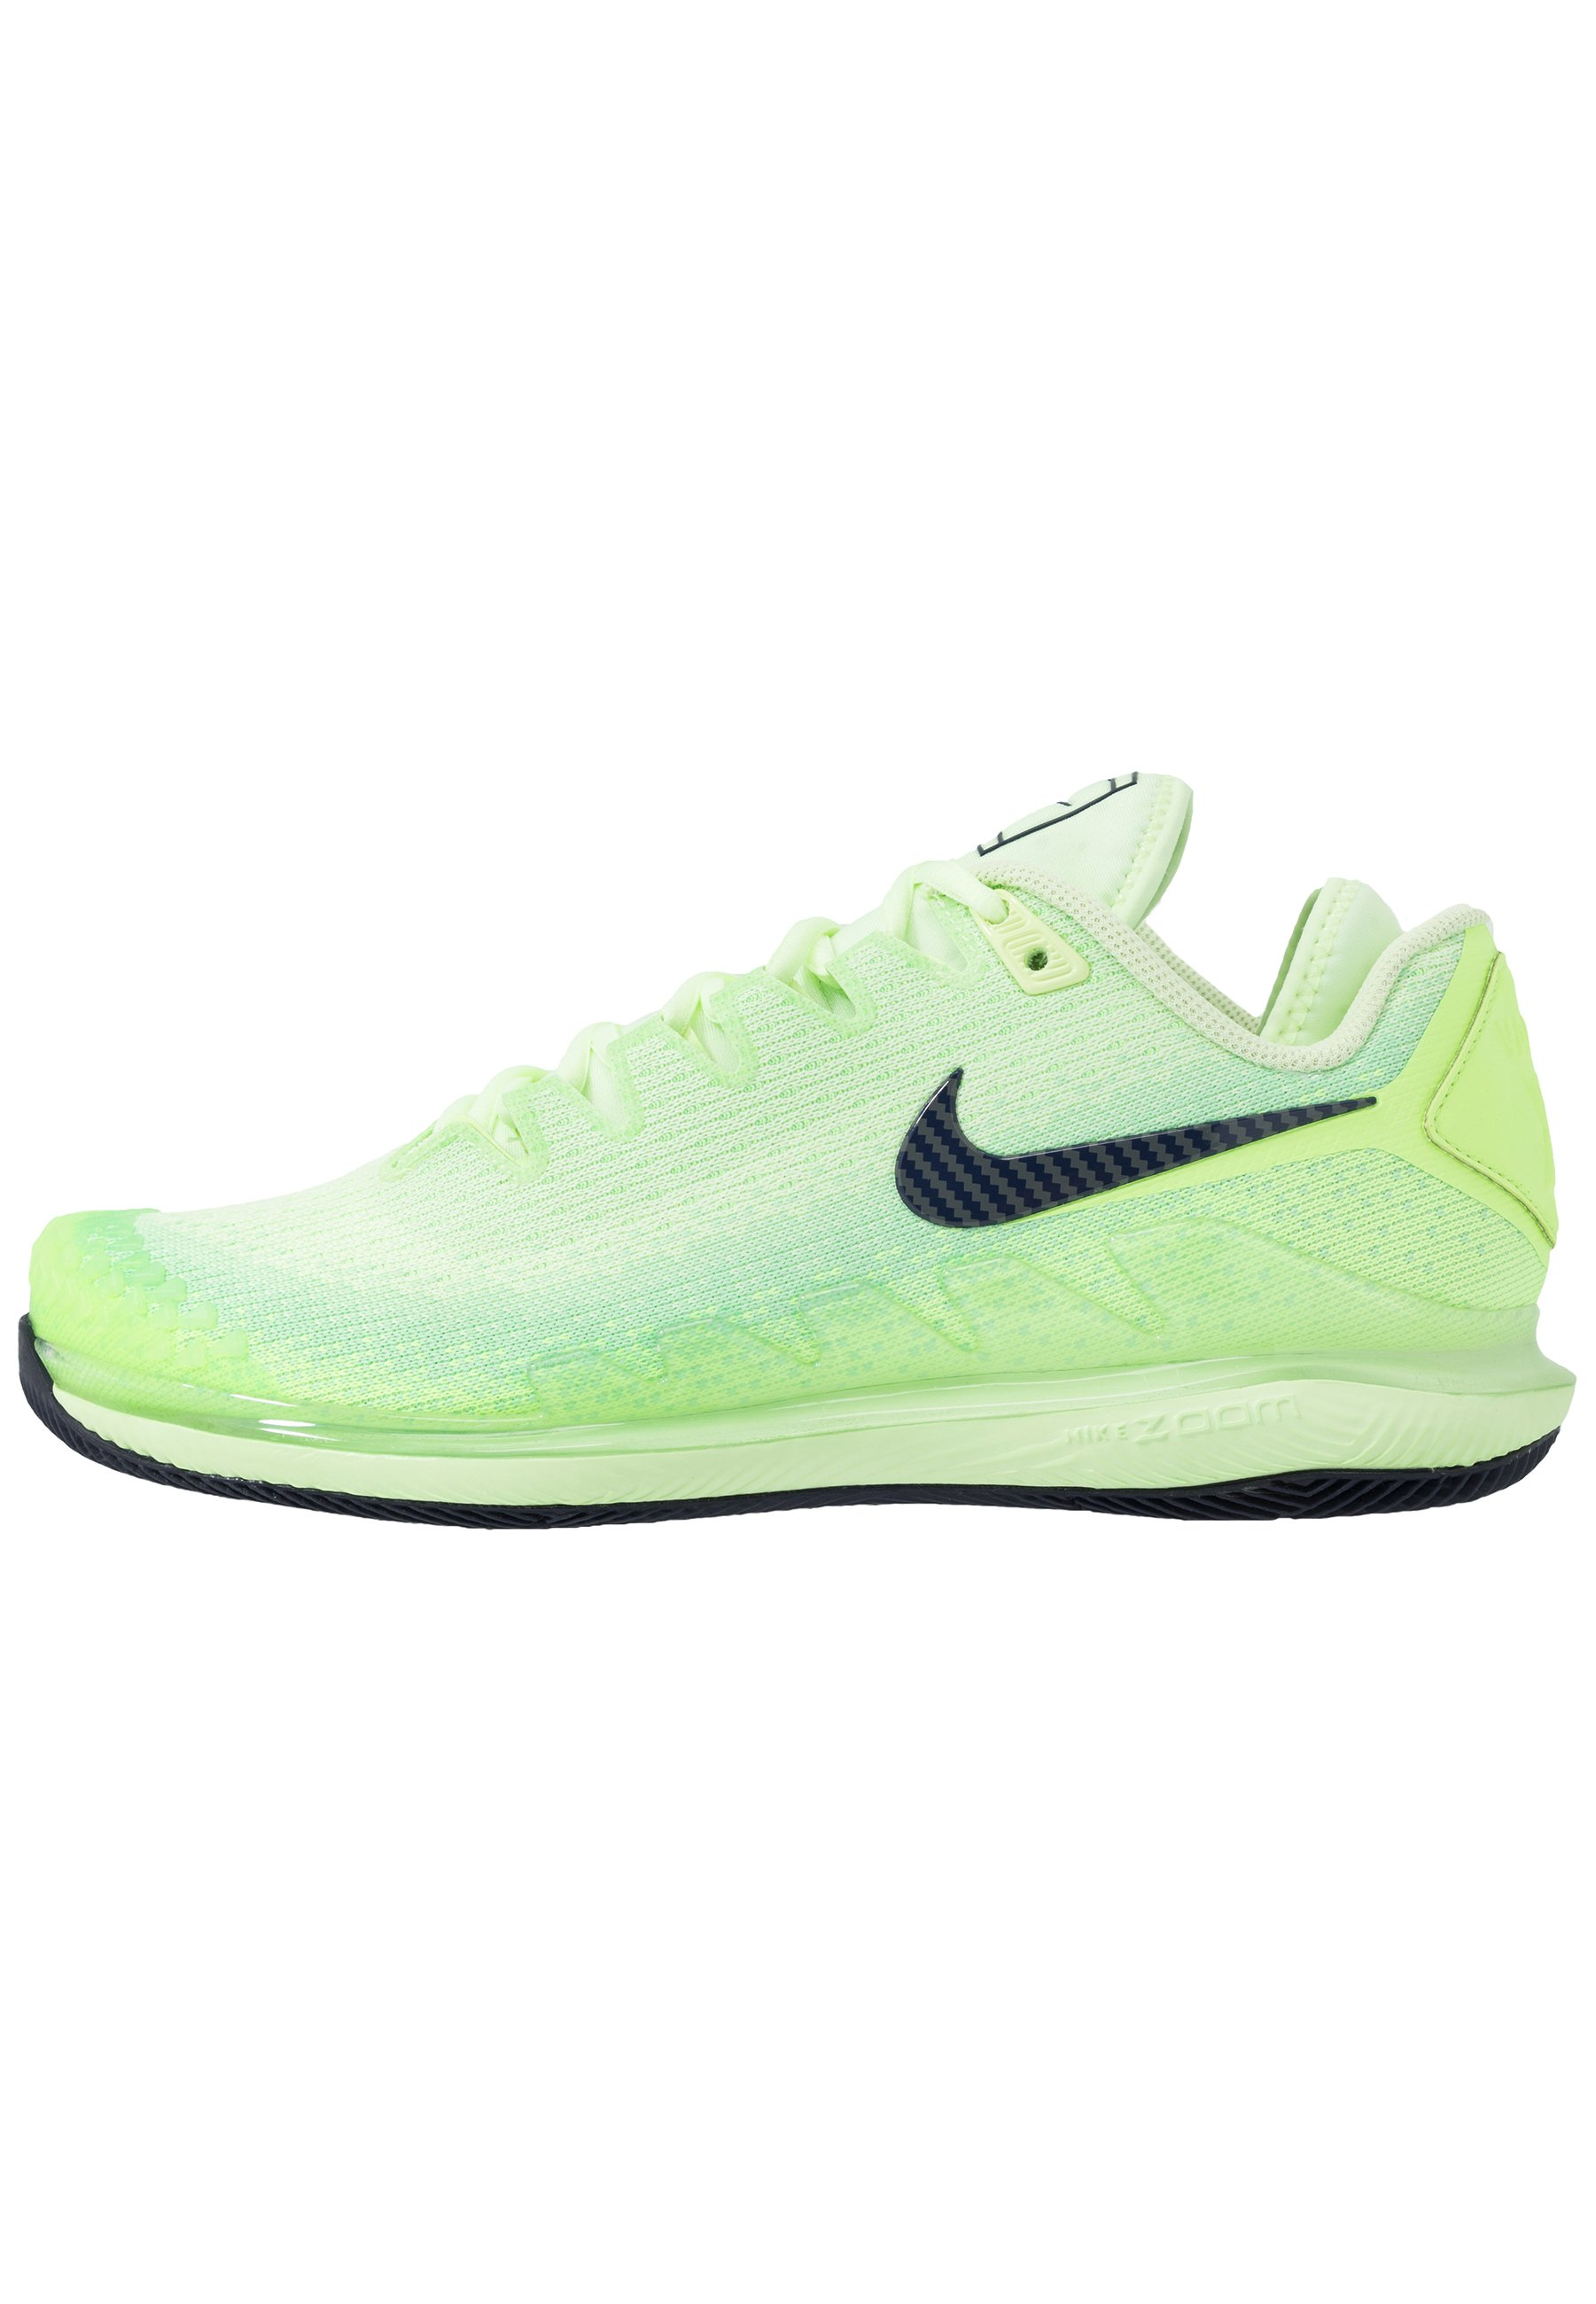 AIR ZOOM VAPOR X Chaussures de tennis toutes surfaces ghost greenblackened bluebarely volt